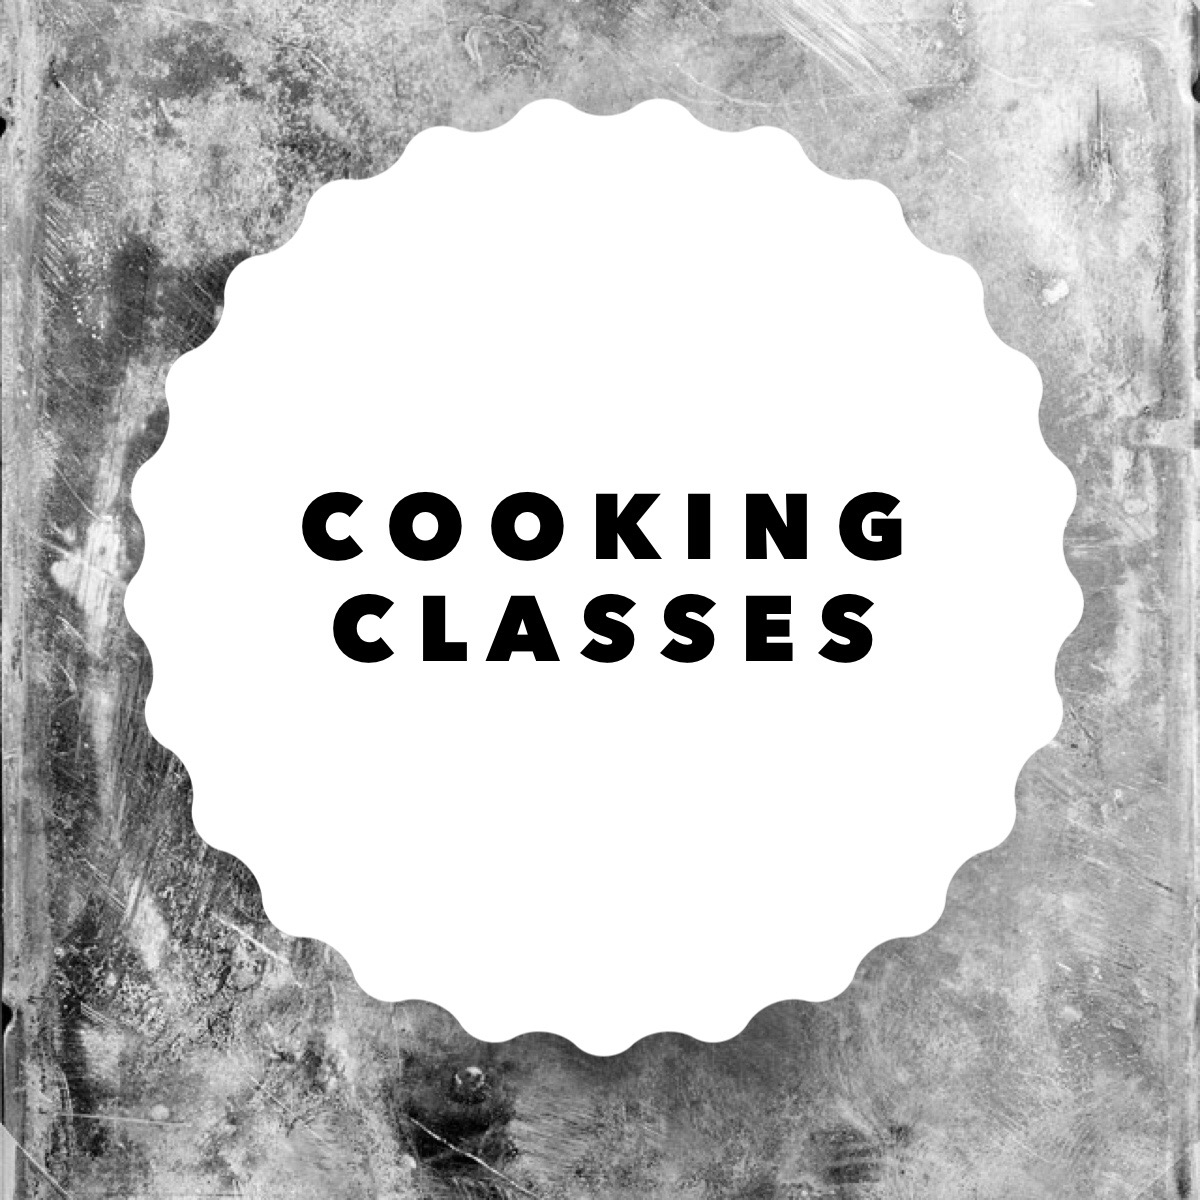 cooking classes experience gifts to give this season